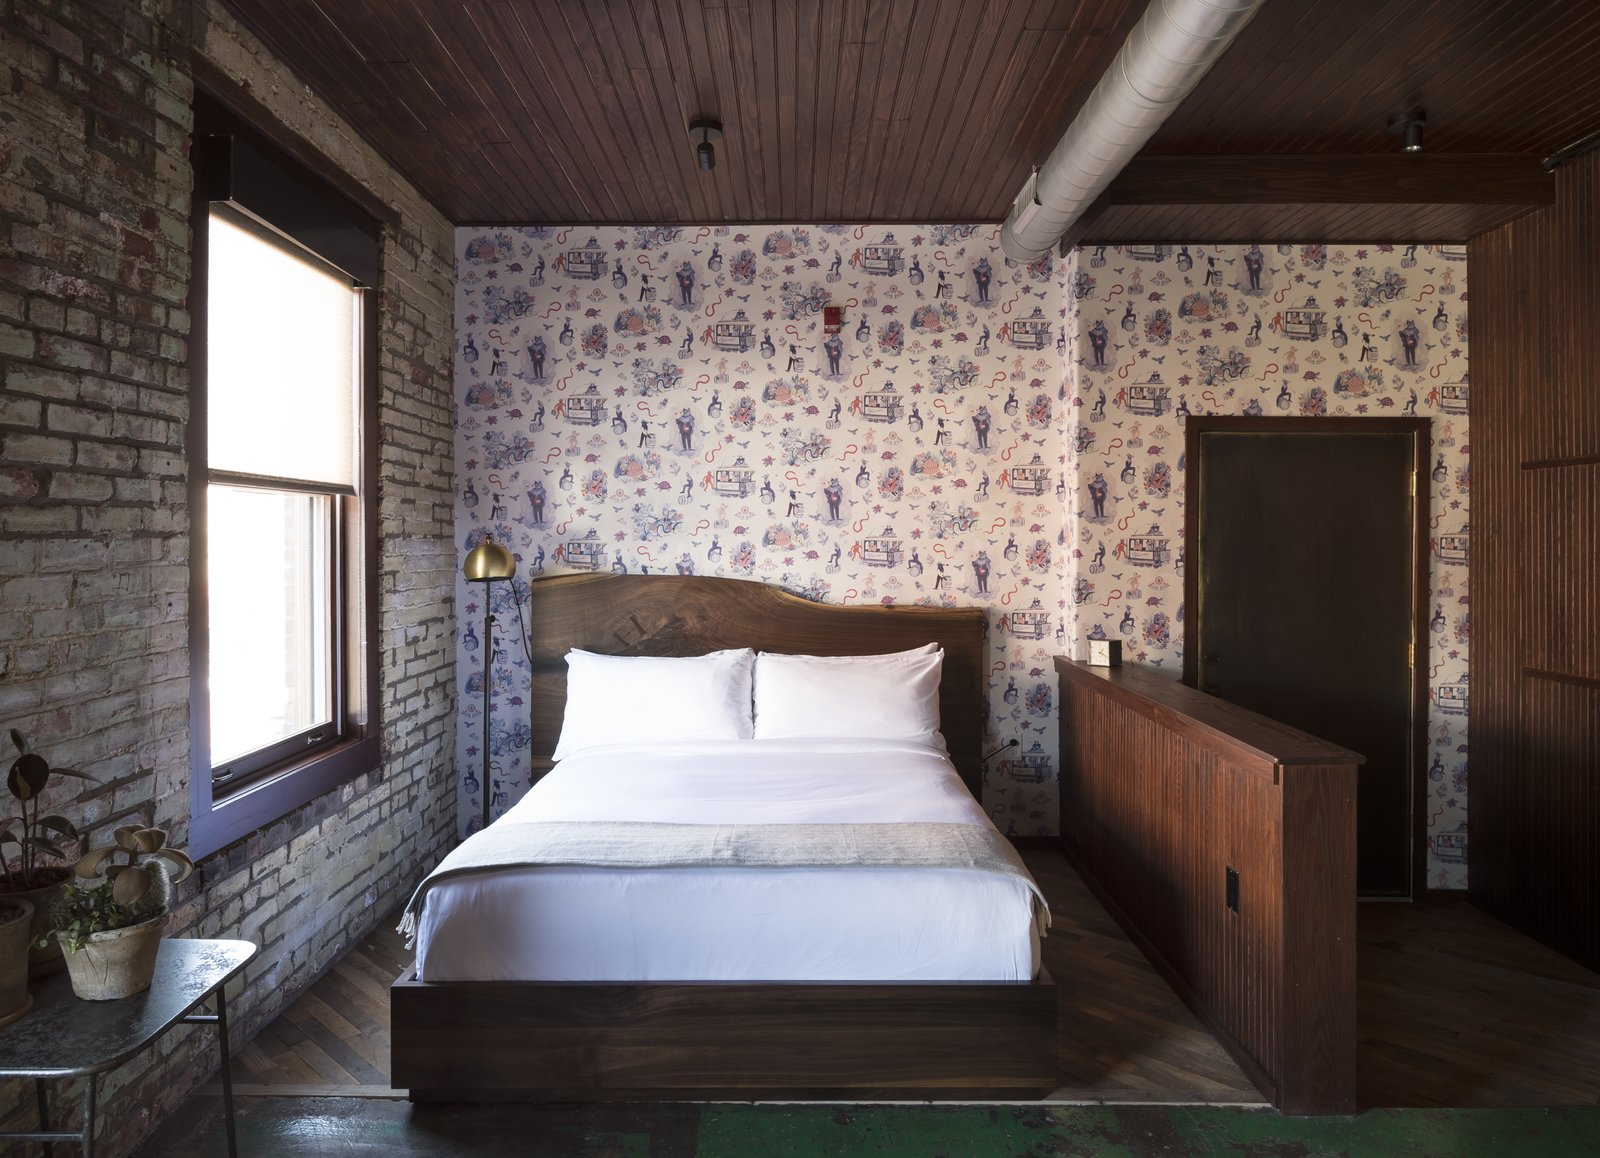 Tagged: Bedroom, Bed, Rug Floor, Floor Lighting, Accent Lighting, and Concrete Floor. History and Modernity Meet in This Industrial Hotel and Restaurant in Philadelphia - Photo 4 of 11